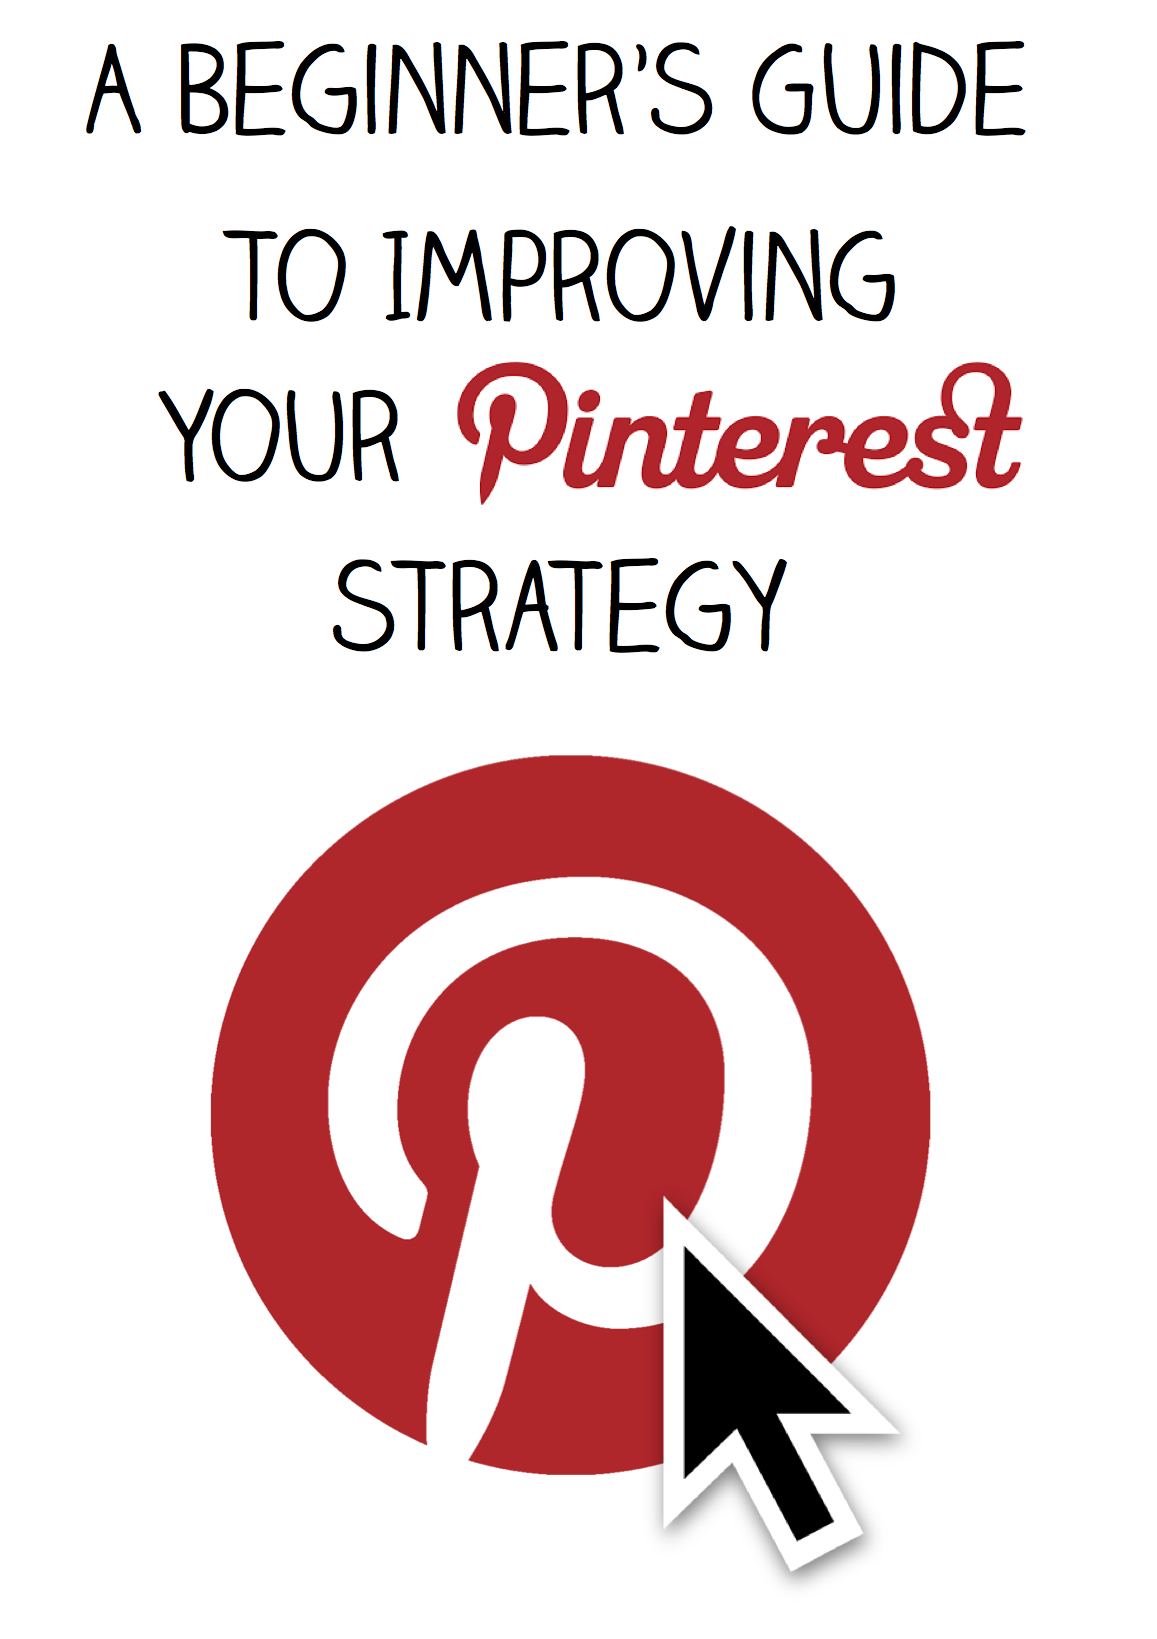 5 Simple Ways to Improve Your Pinterest Strategy